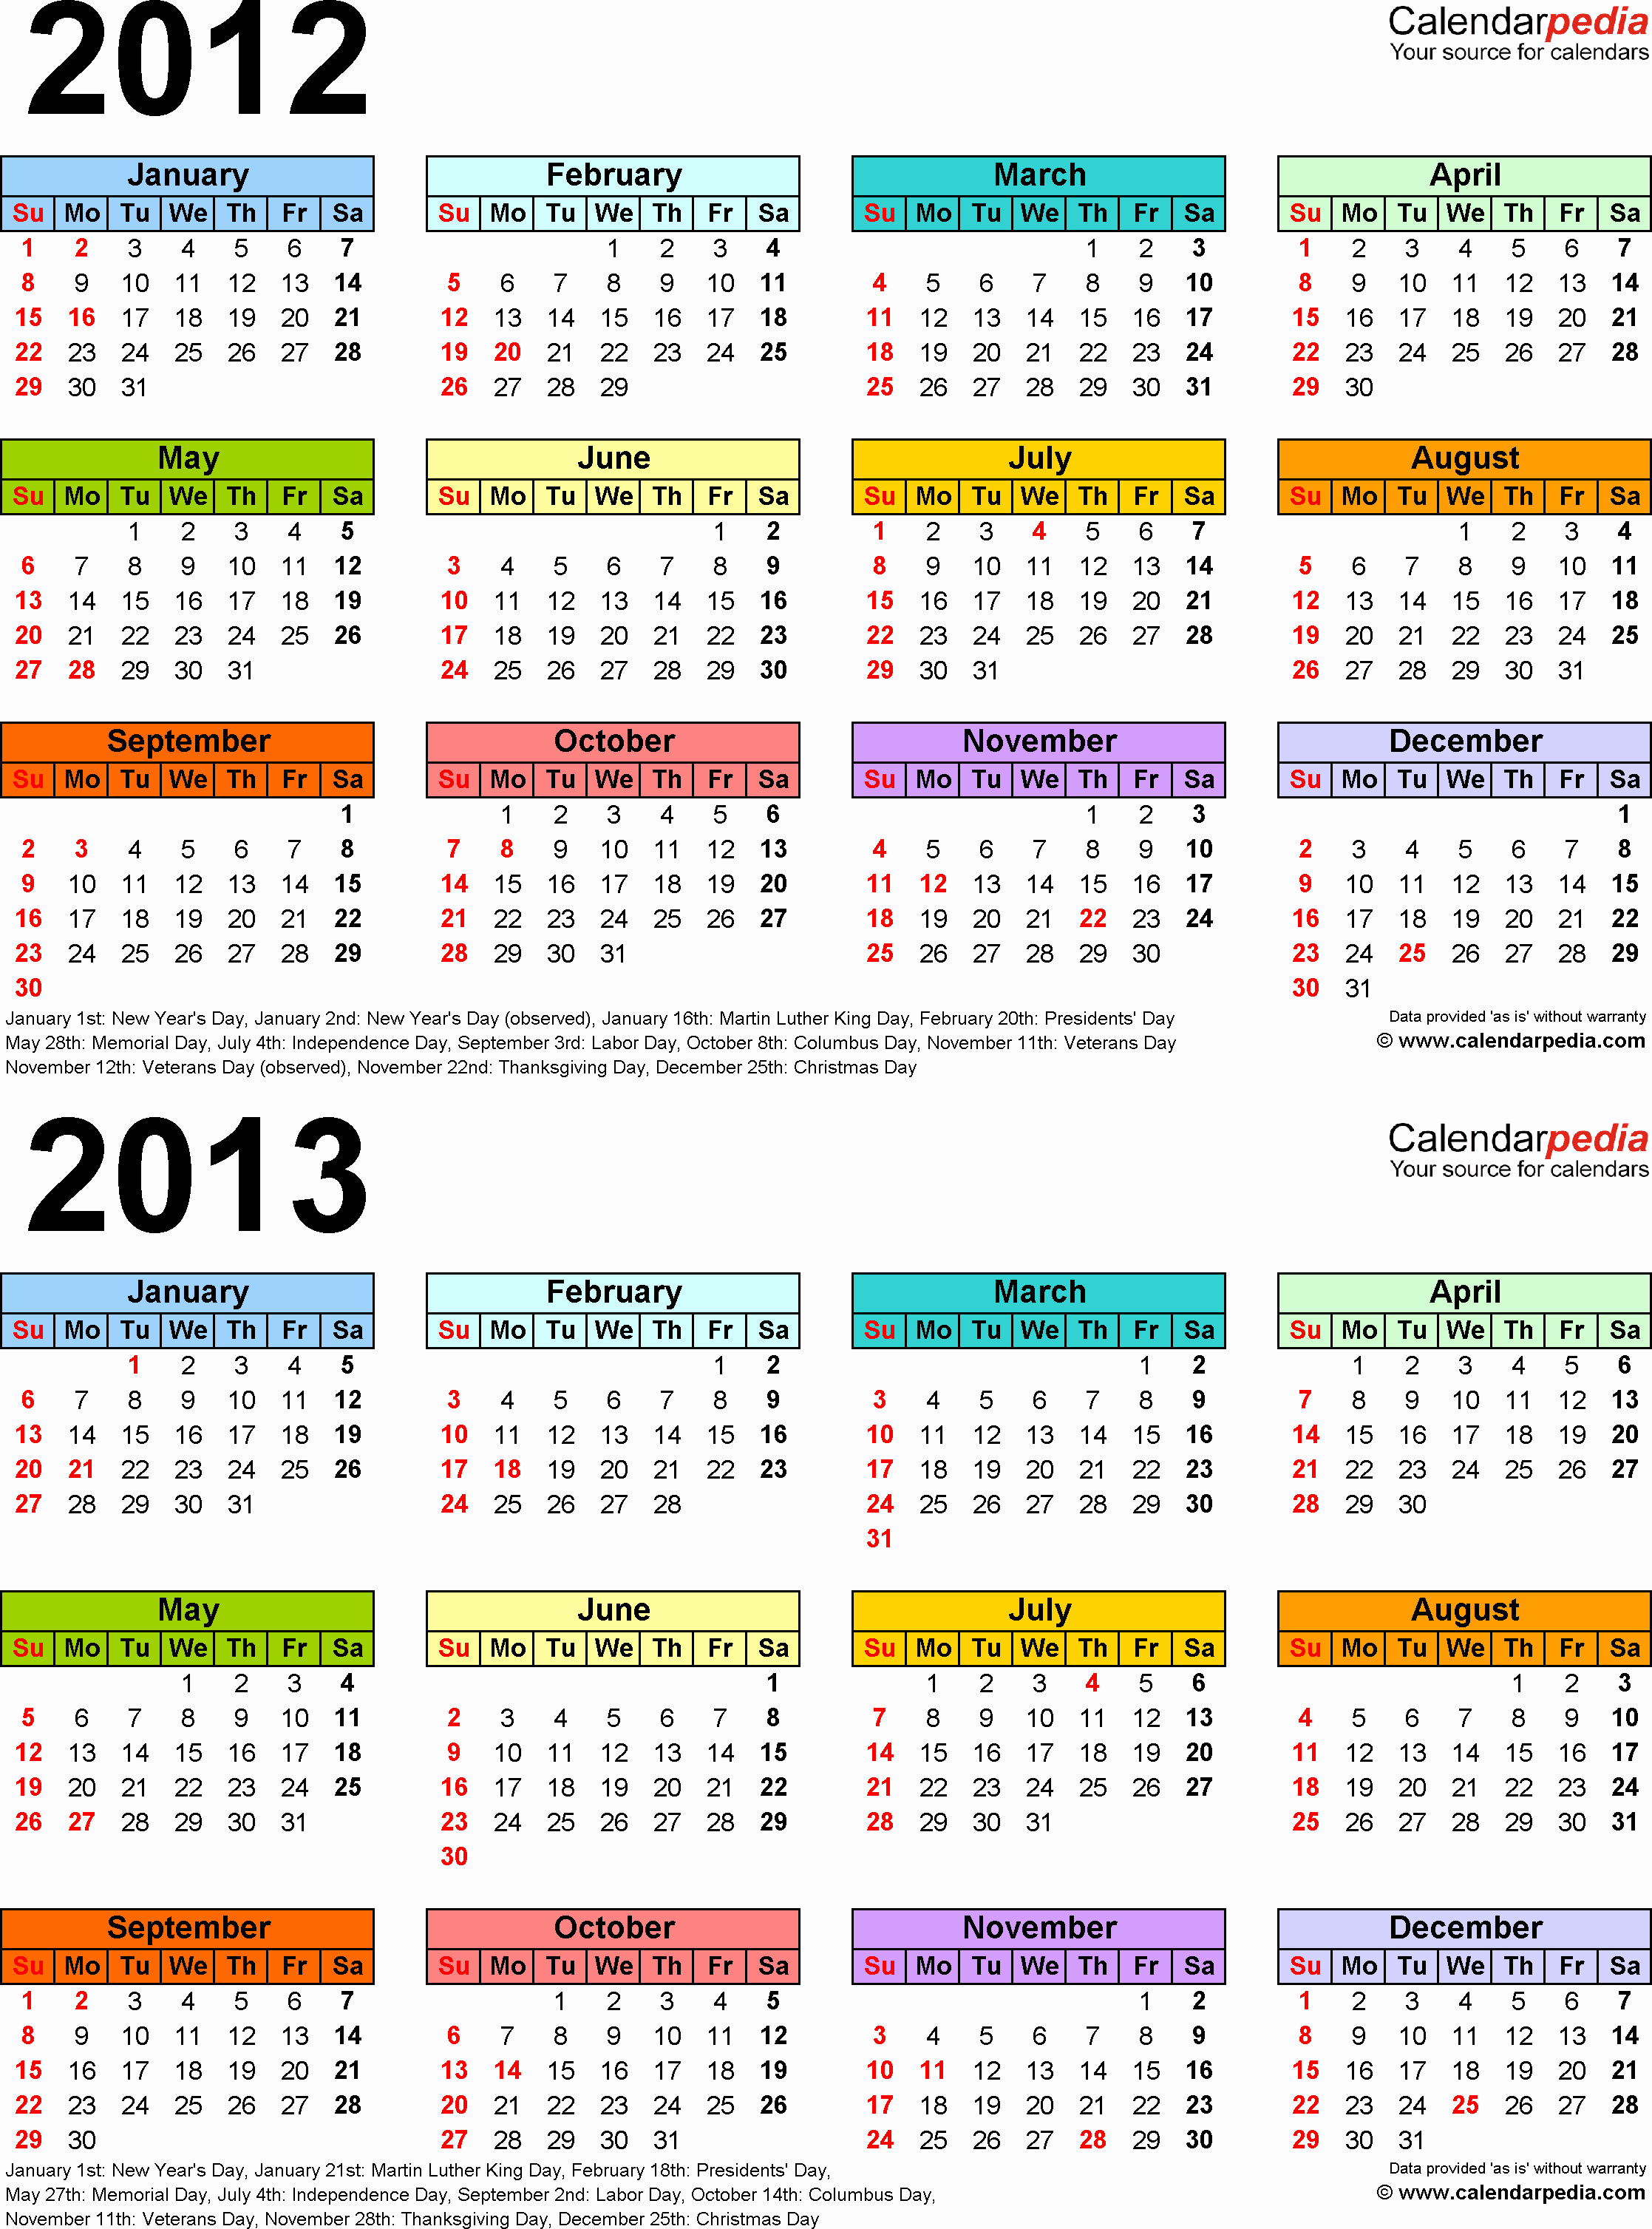 2013 Calendar Printable One Page New 2012 2013 Calendar Free Printable Two Year Word Calendars